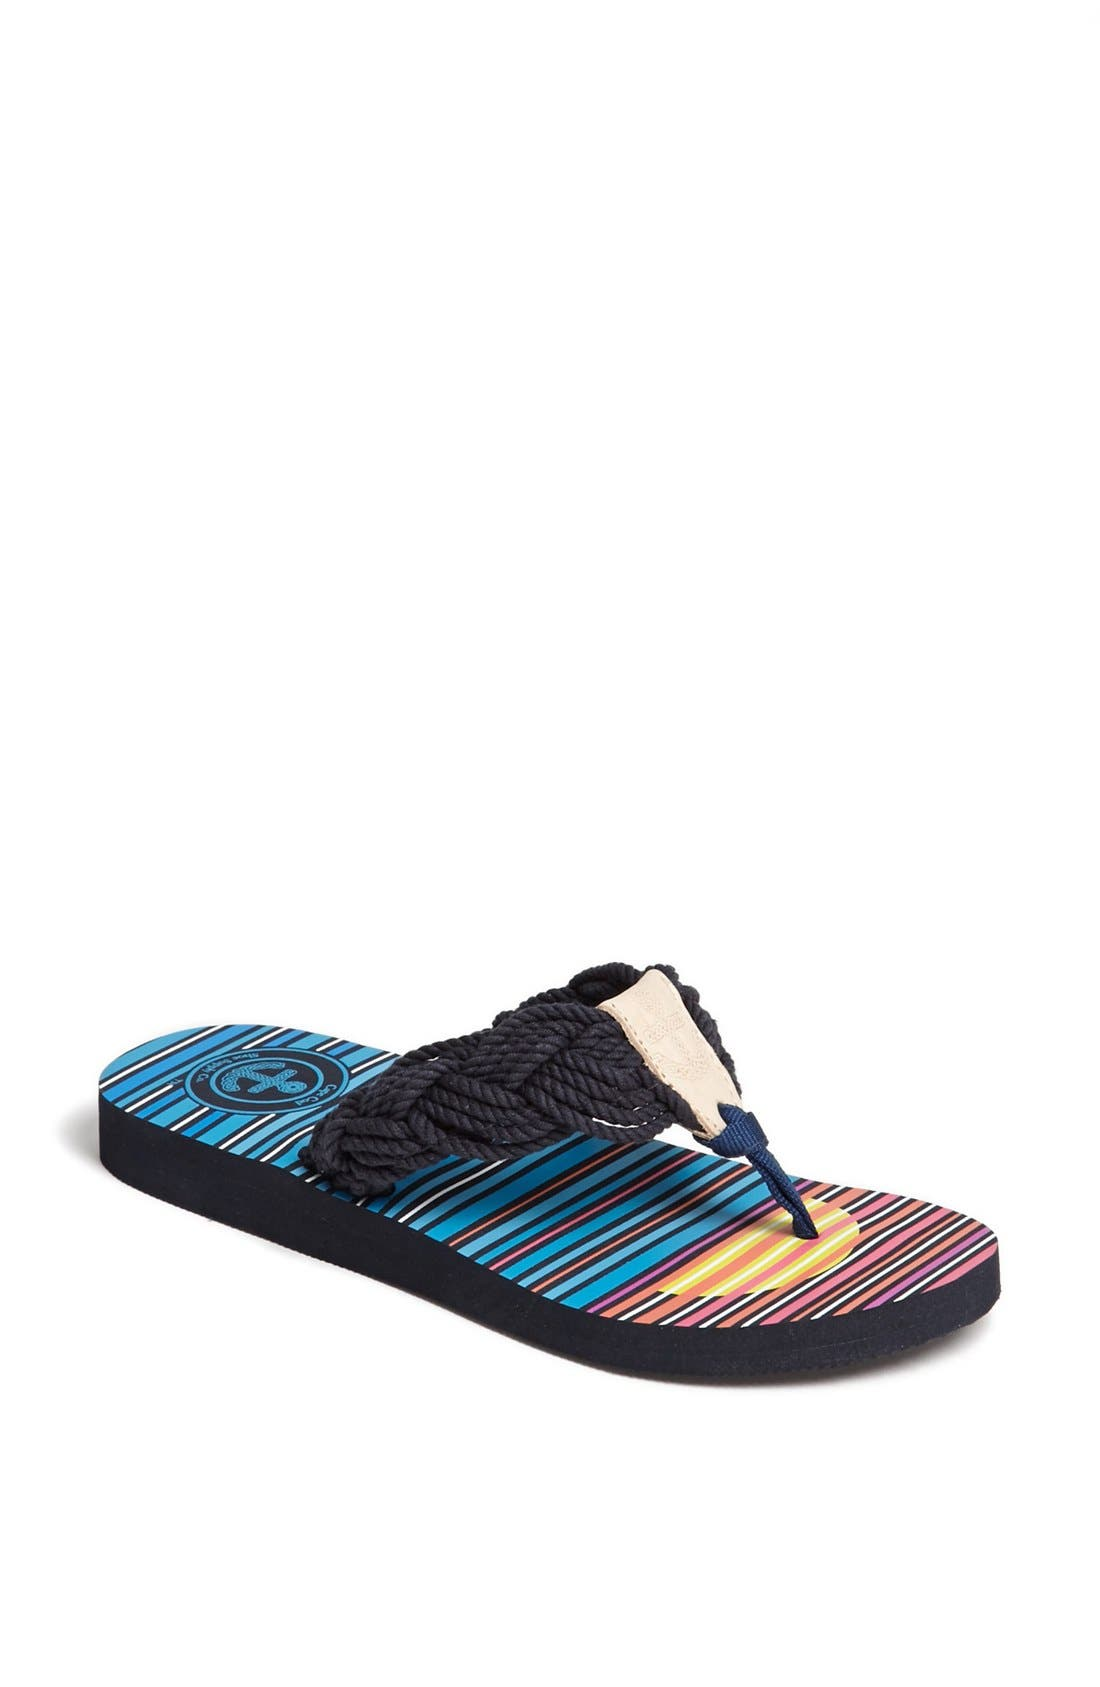 Main Image - Cape Cod Shoe Supply Co. 'Mainsail' Flip Flop